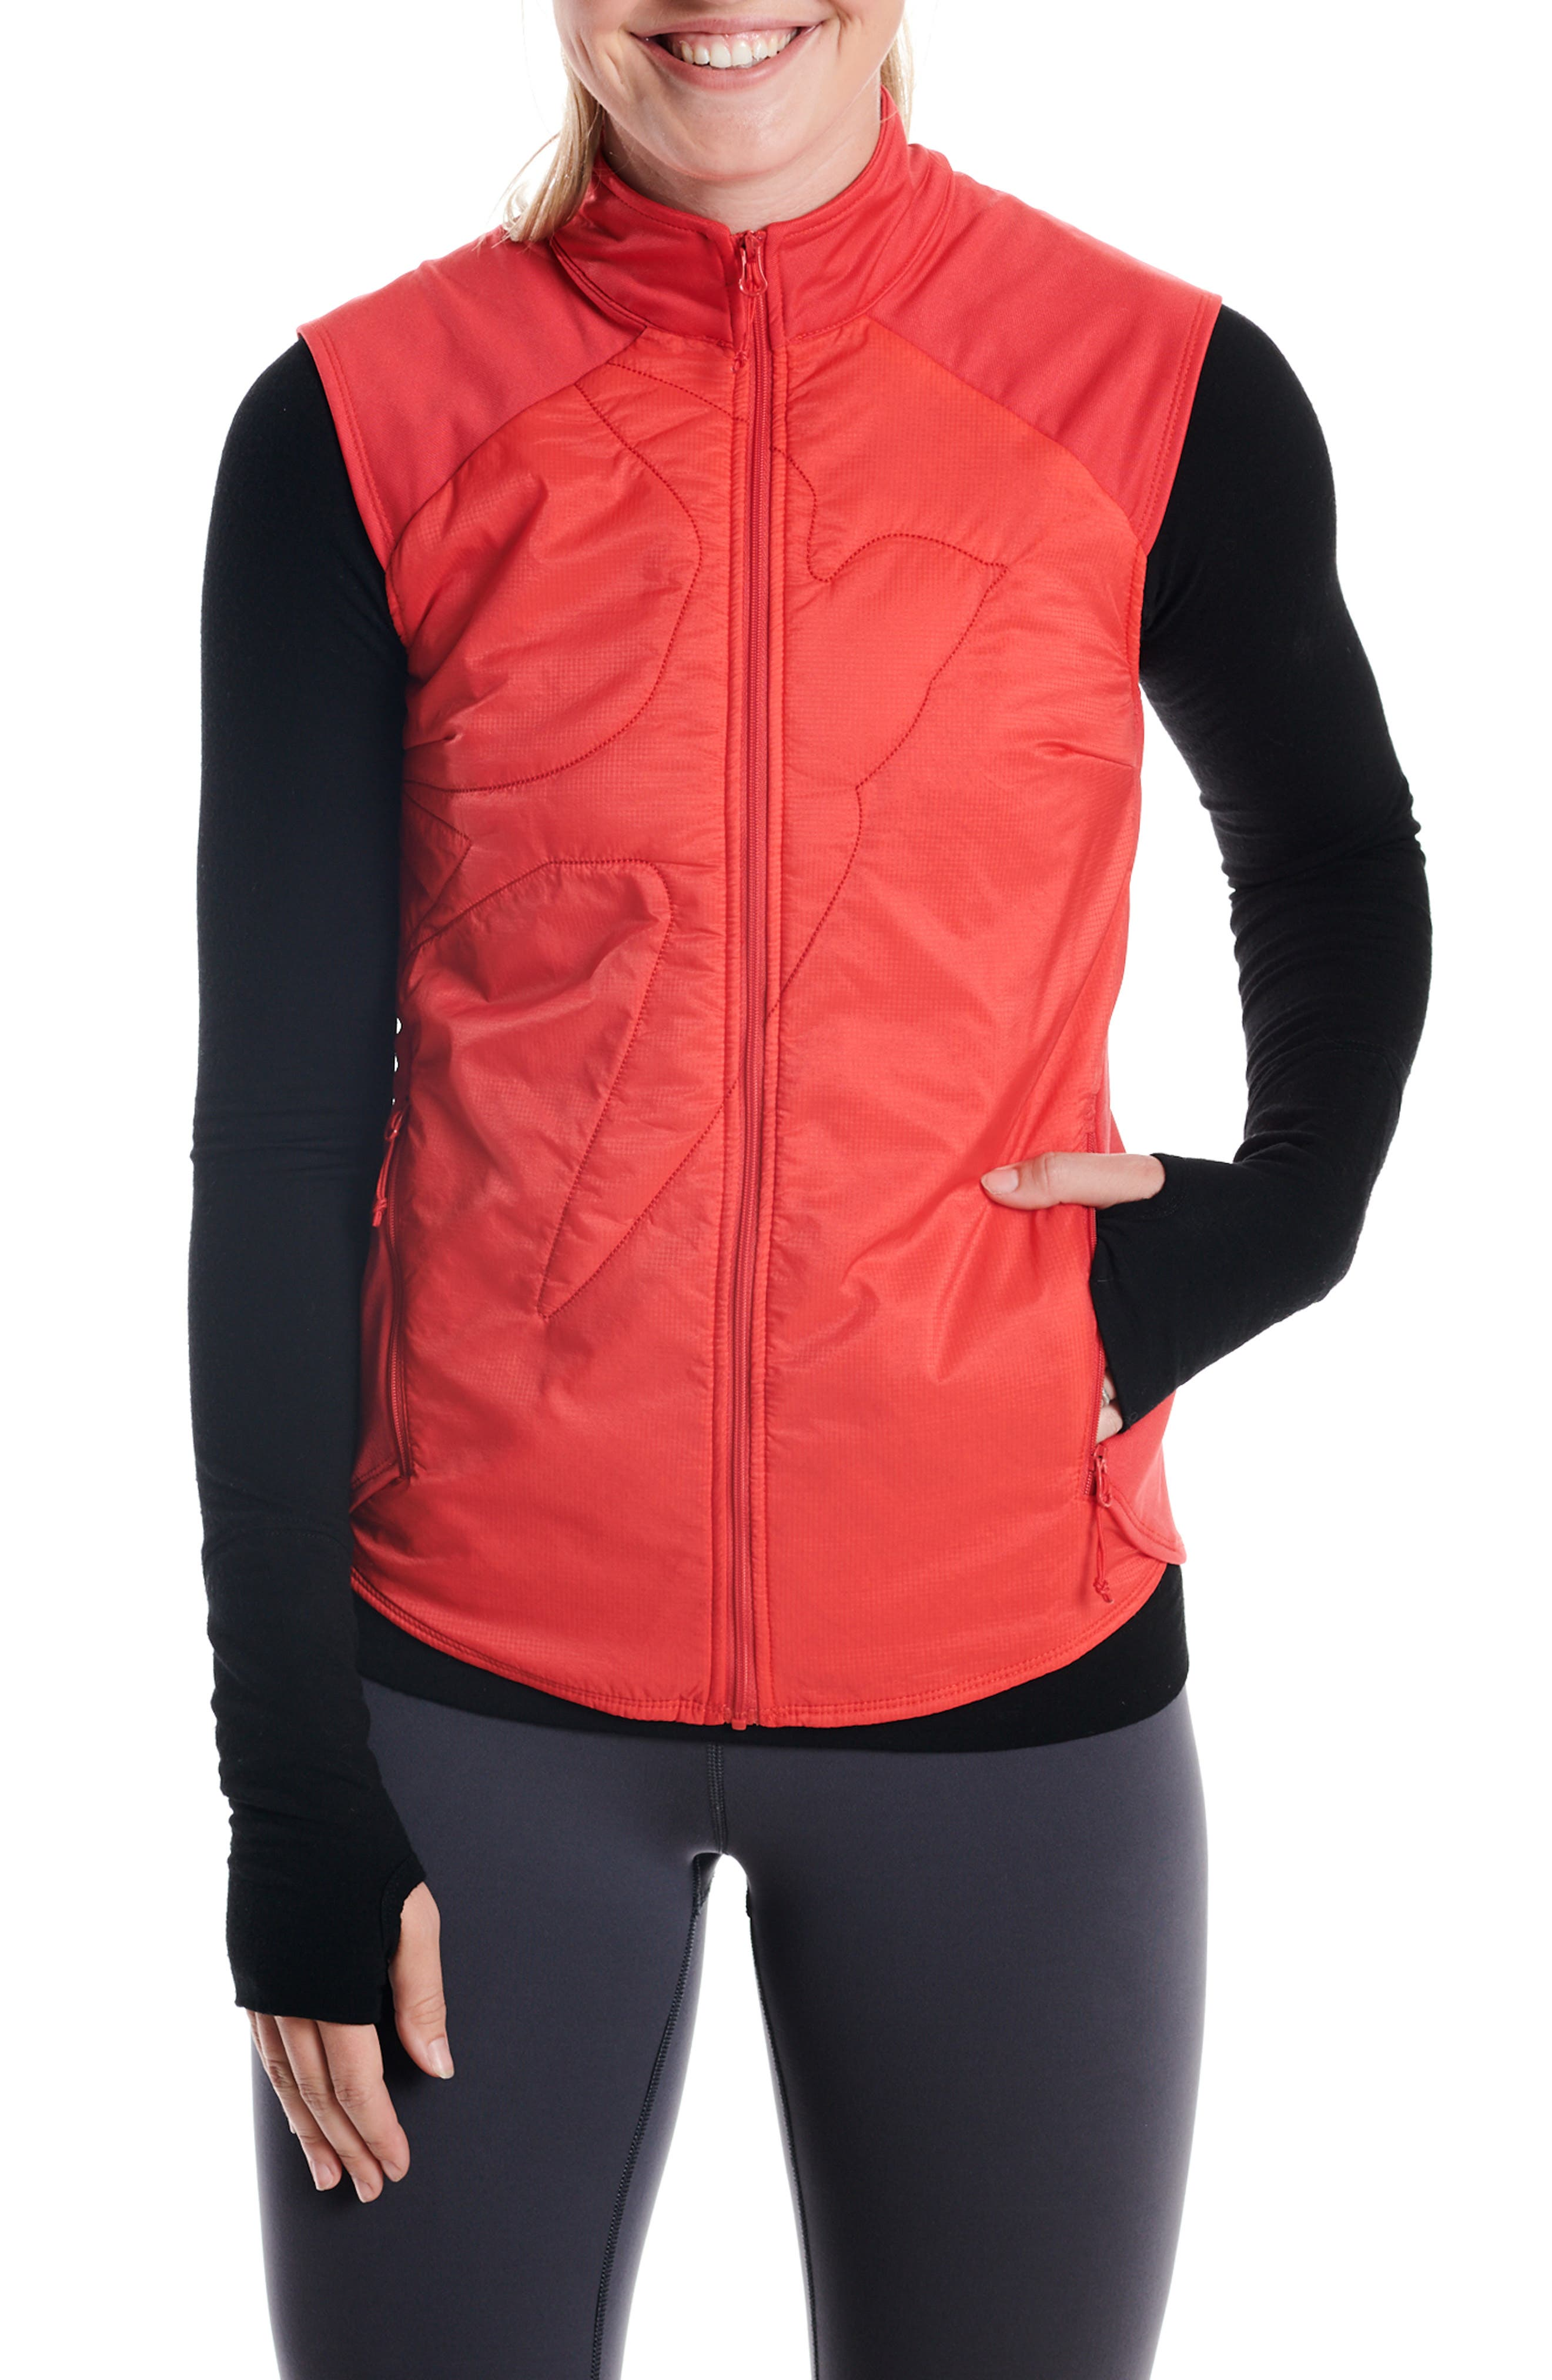 Oiselle Flyout Vest, Red